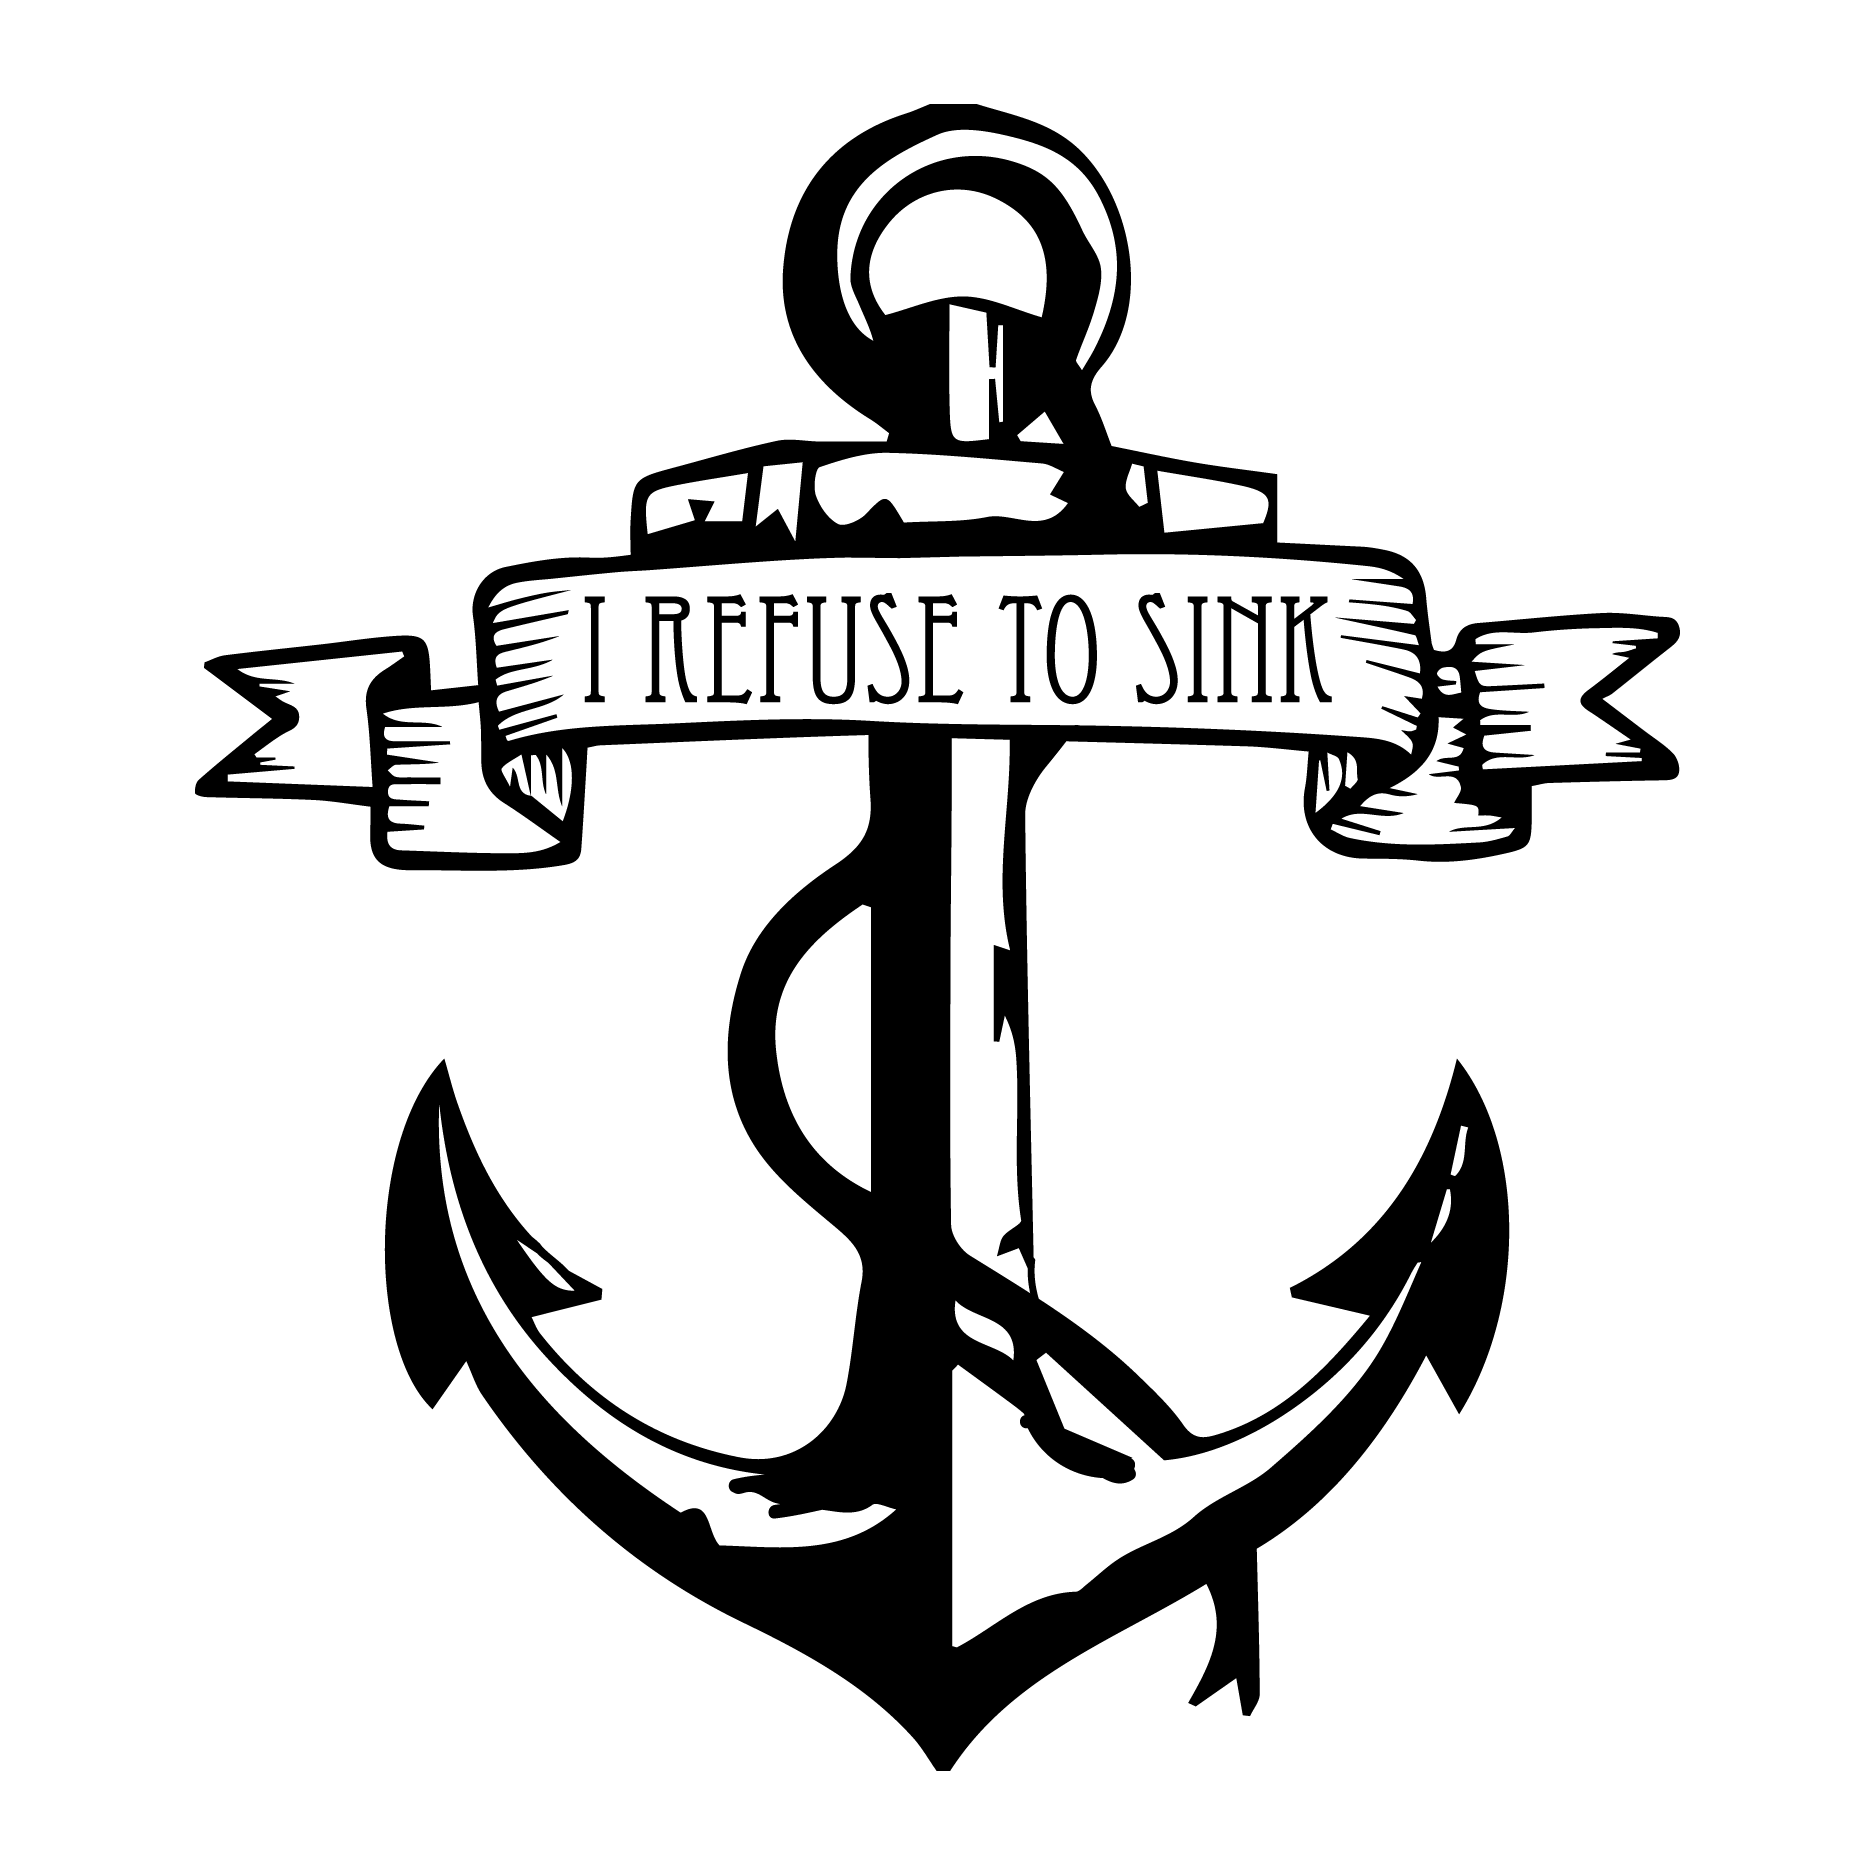 Clipart anchor decal. I refuse to sink